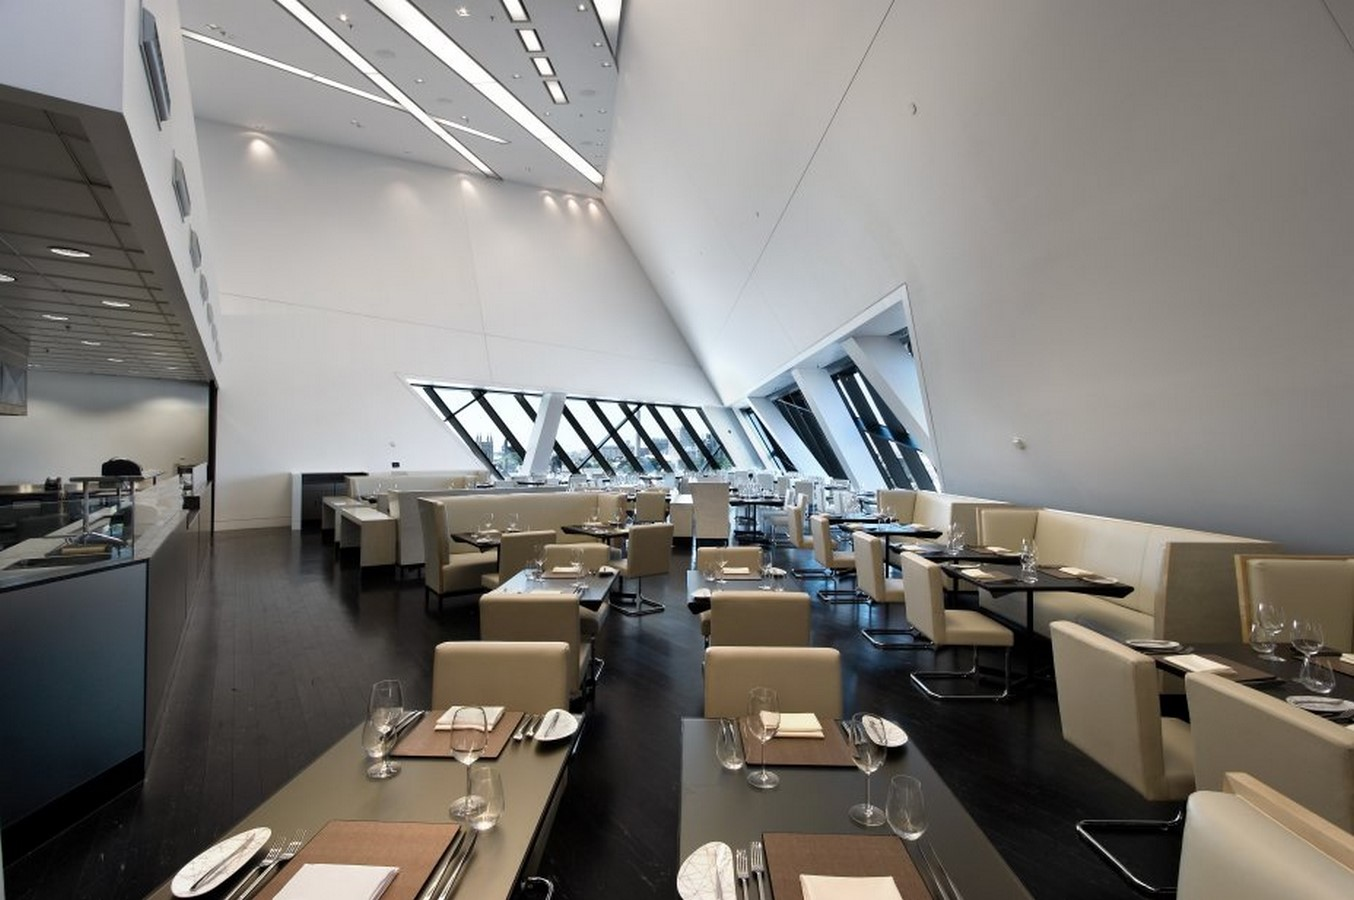 Royal Ontario Museum by Daniel Libeskind: The modern Crystal - Sheet3